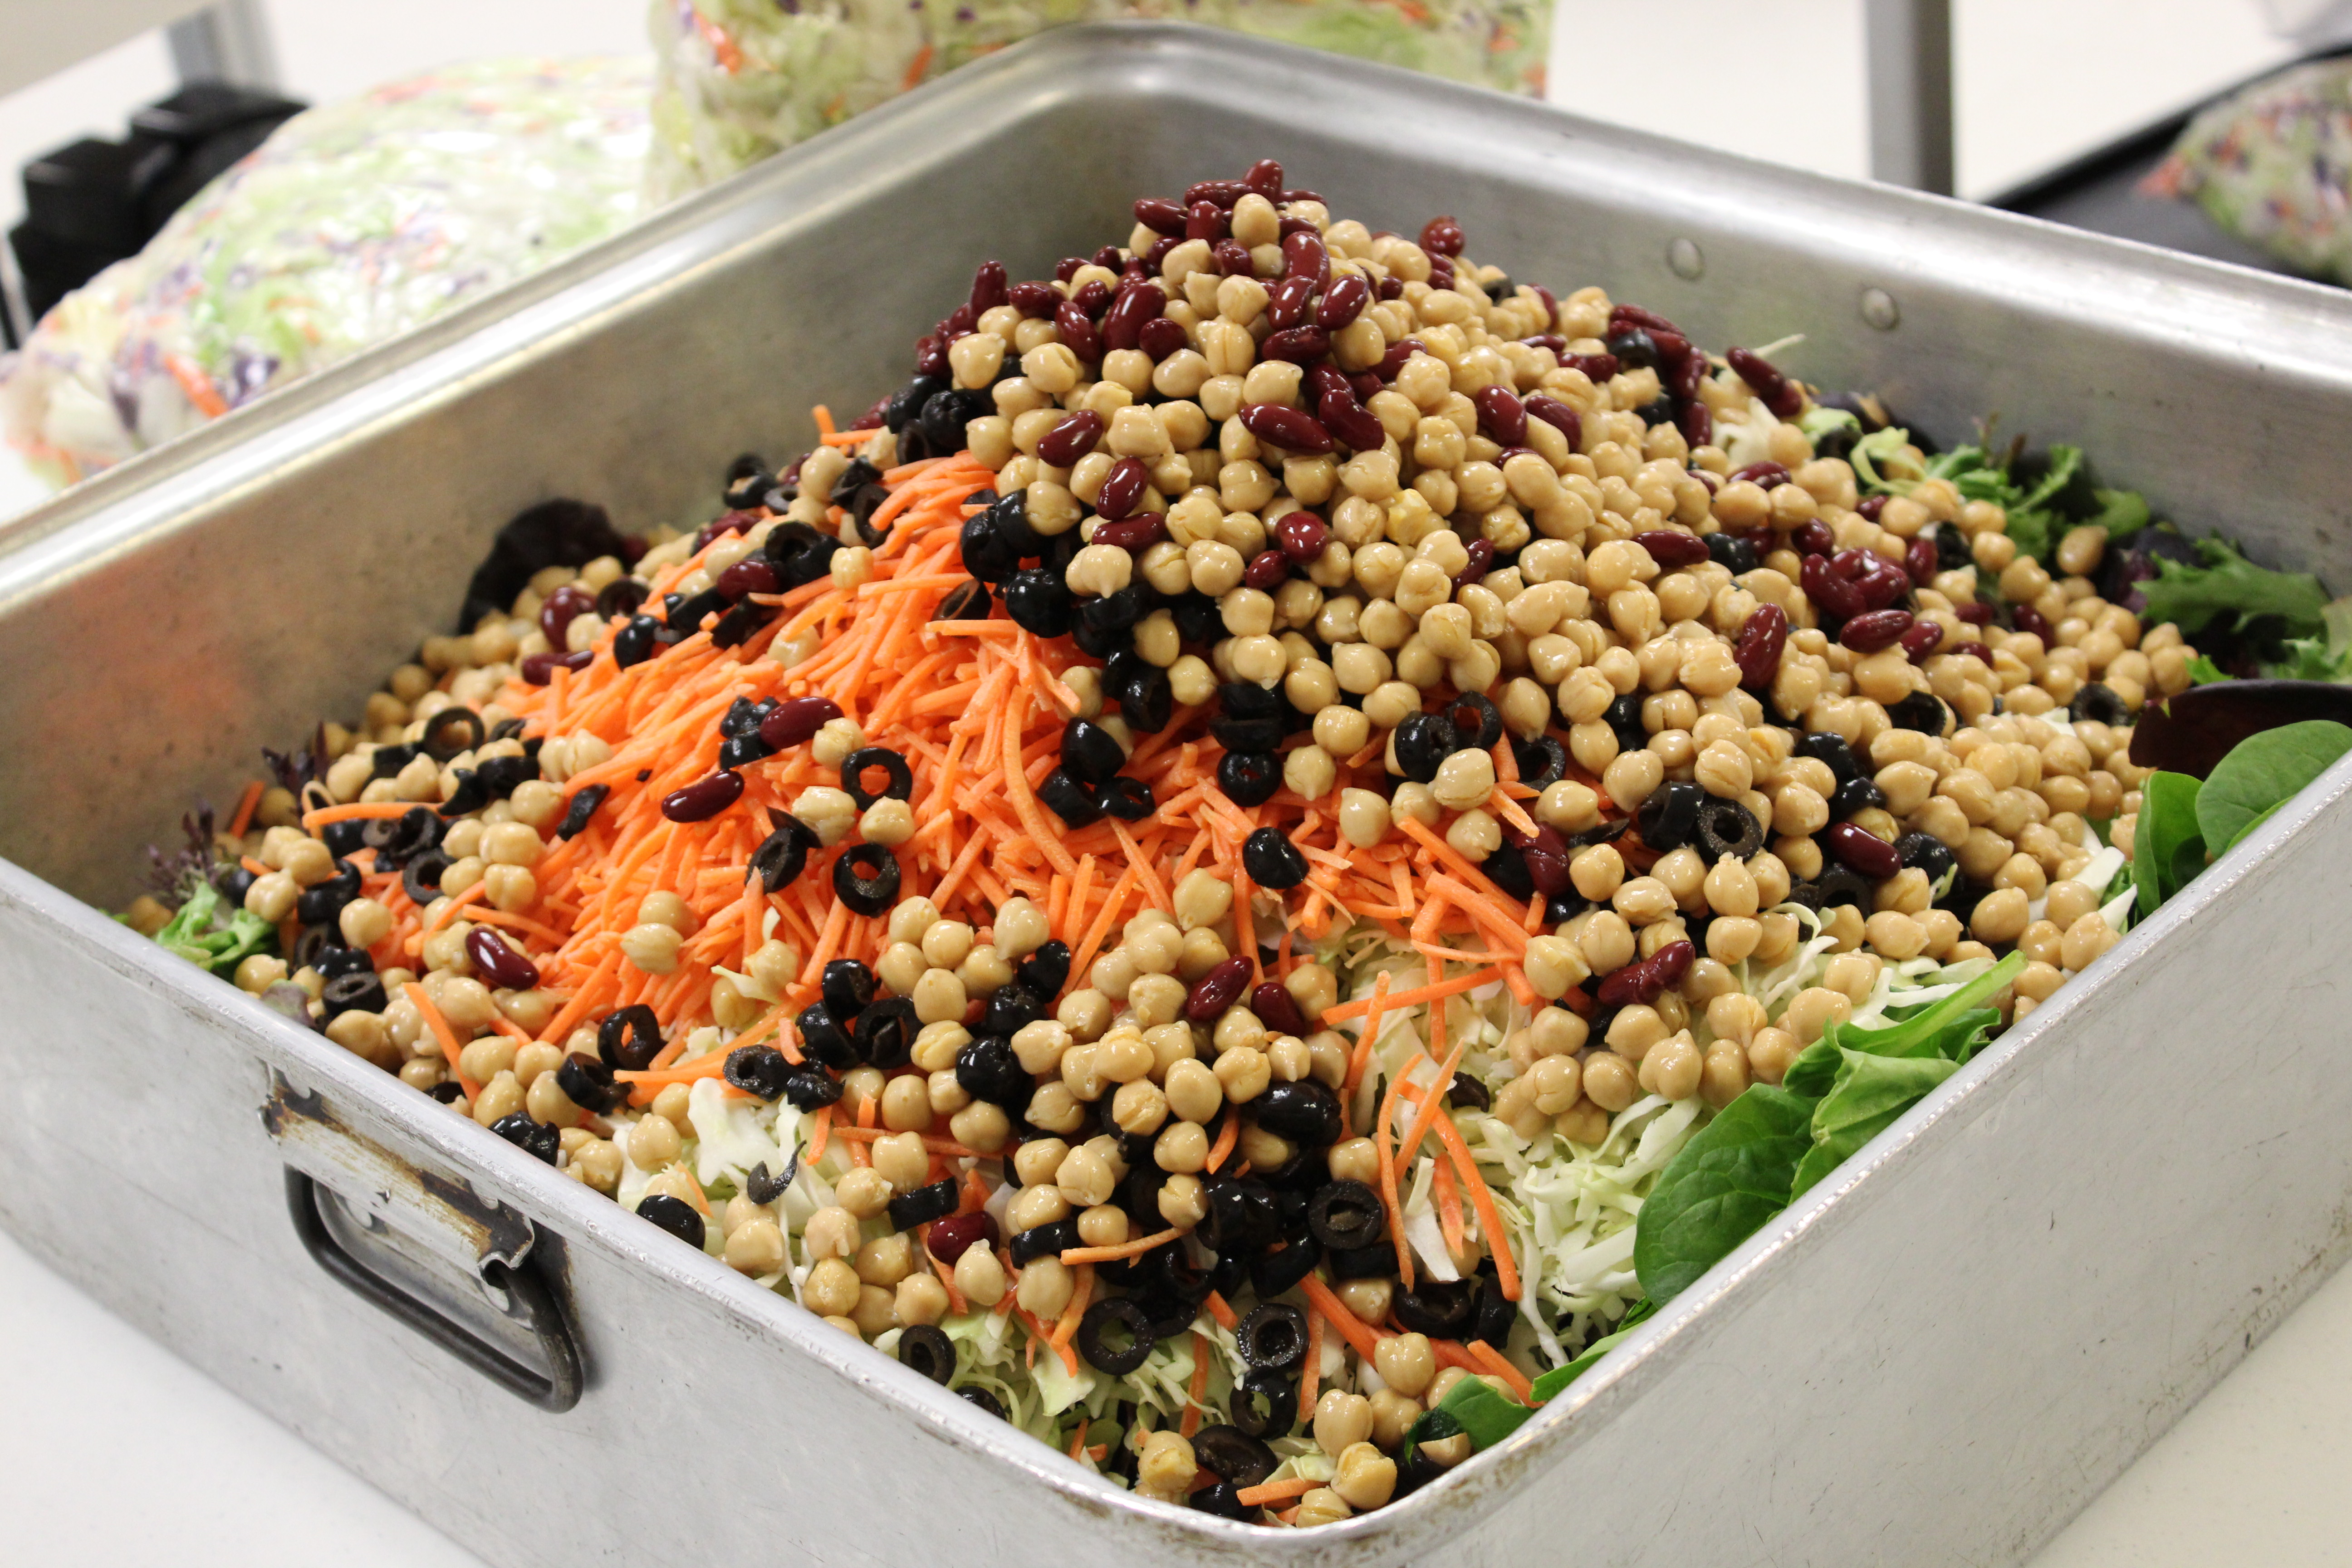 Pictured: Salad ingredients being prepared on a stainless steel table in the Senior Center kitchen.